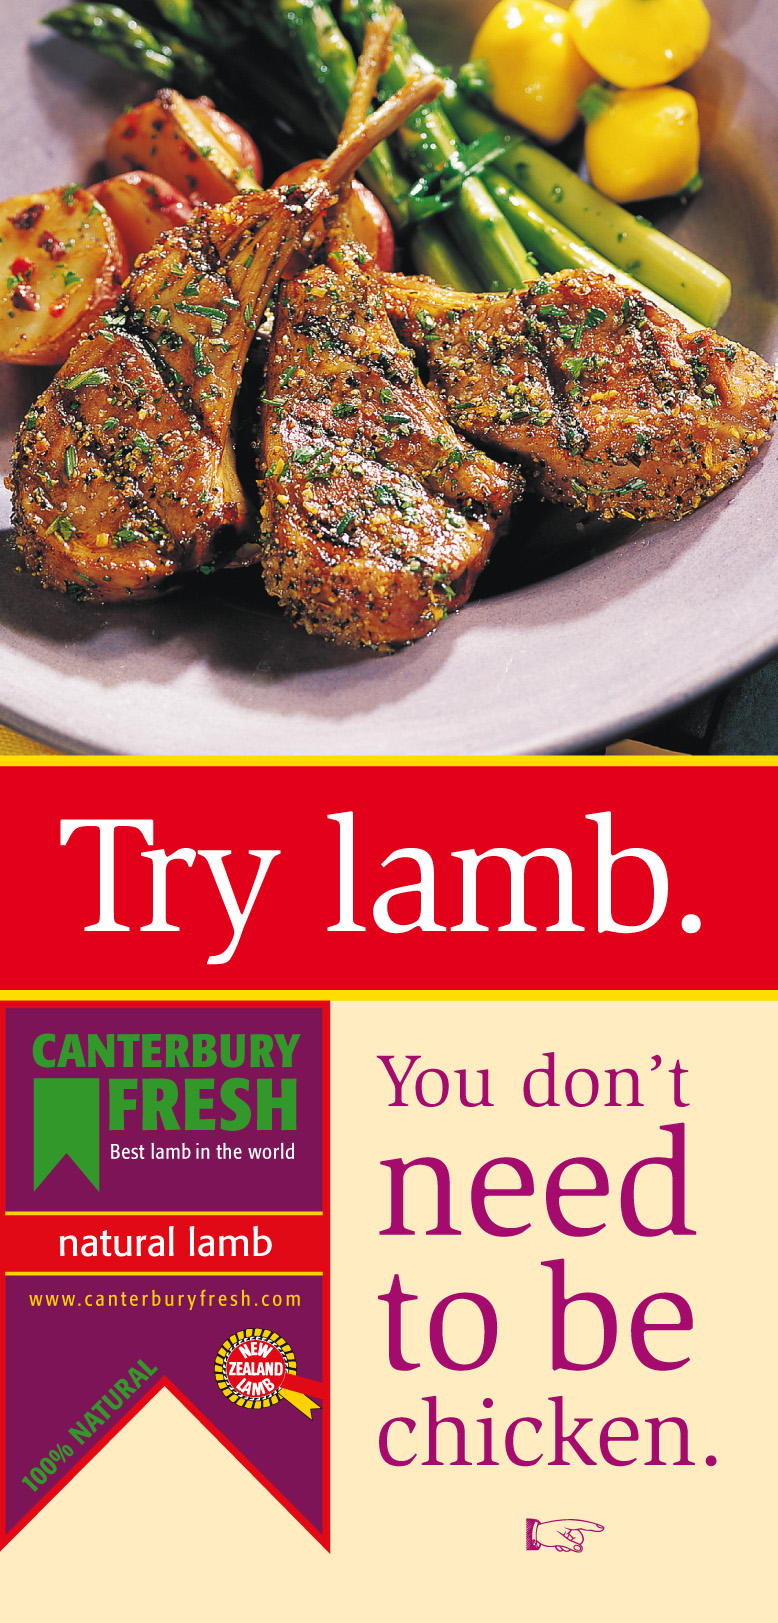 Canterbury Fresh – Point of sale brochure used in major U.S. supermarket chain. Chicken is by far America's meat of choice. Canterbury Fresh exports premium New Zealand lamb.